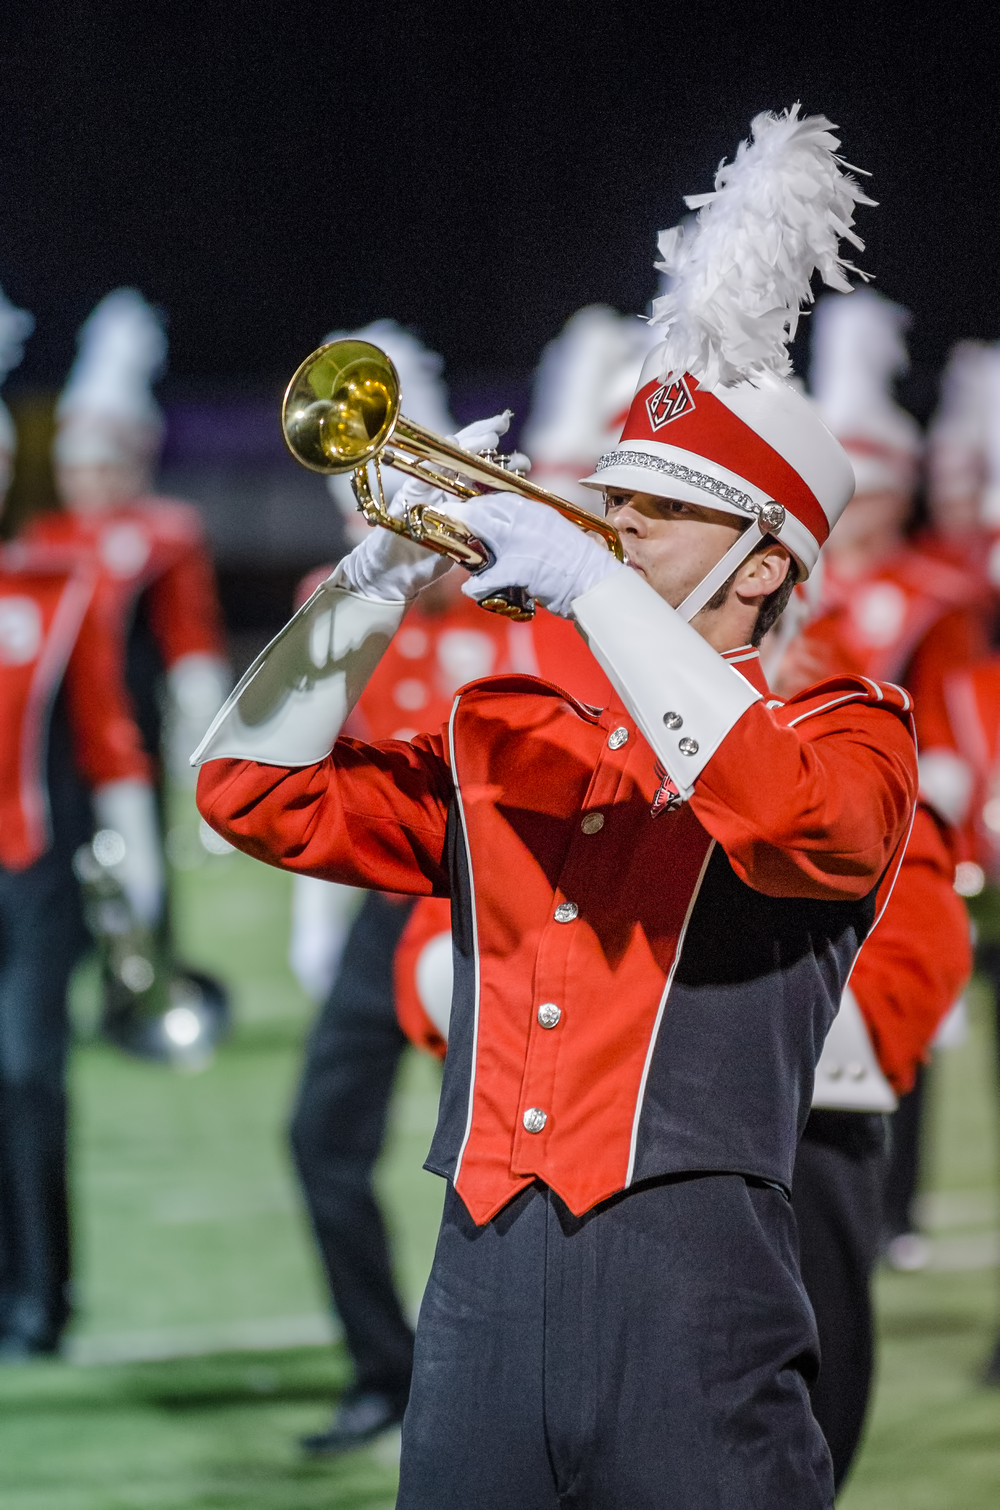 """Flying Solo"" Ball State Trumpet Solo  Nikon D7000 ISO 1600 200mm f/2.8 1/200 sec."